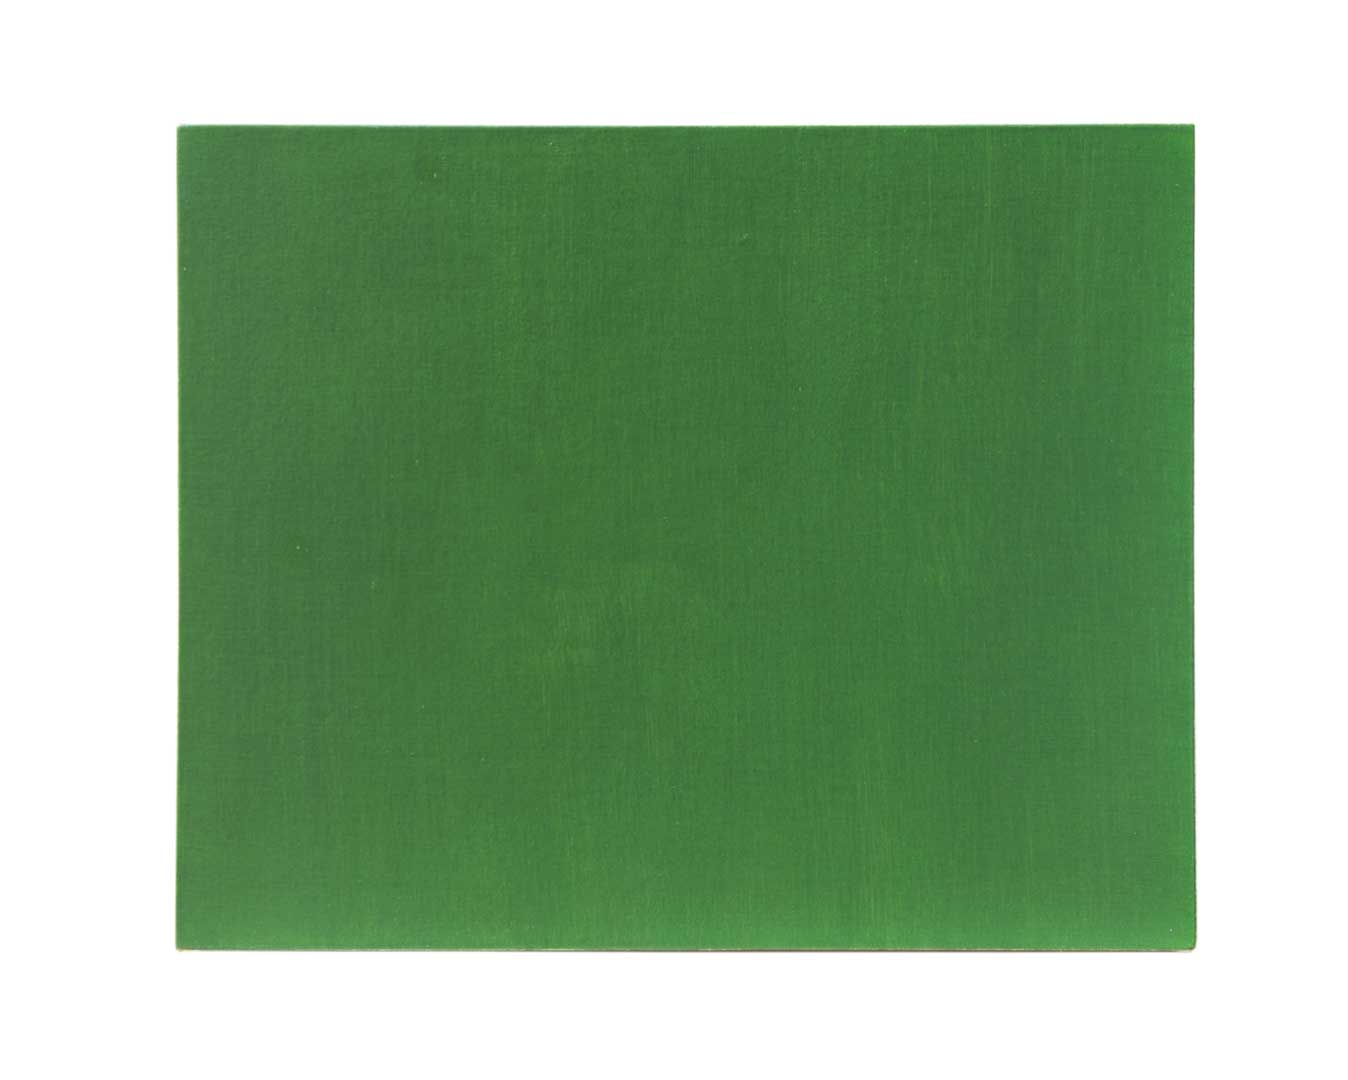 marcia hafif, double glaze painting olive green light green 2004 ny, oil/ linen, 51 x 41 cm